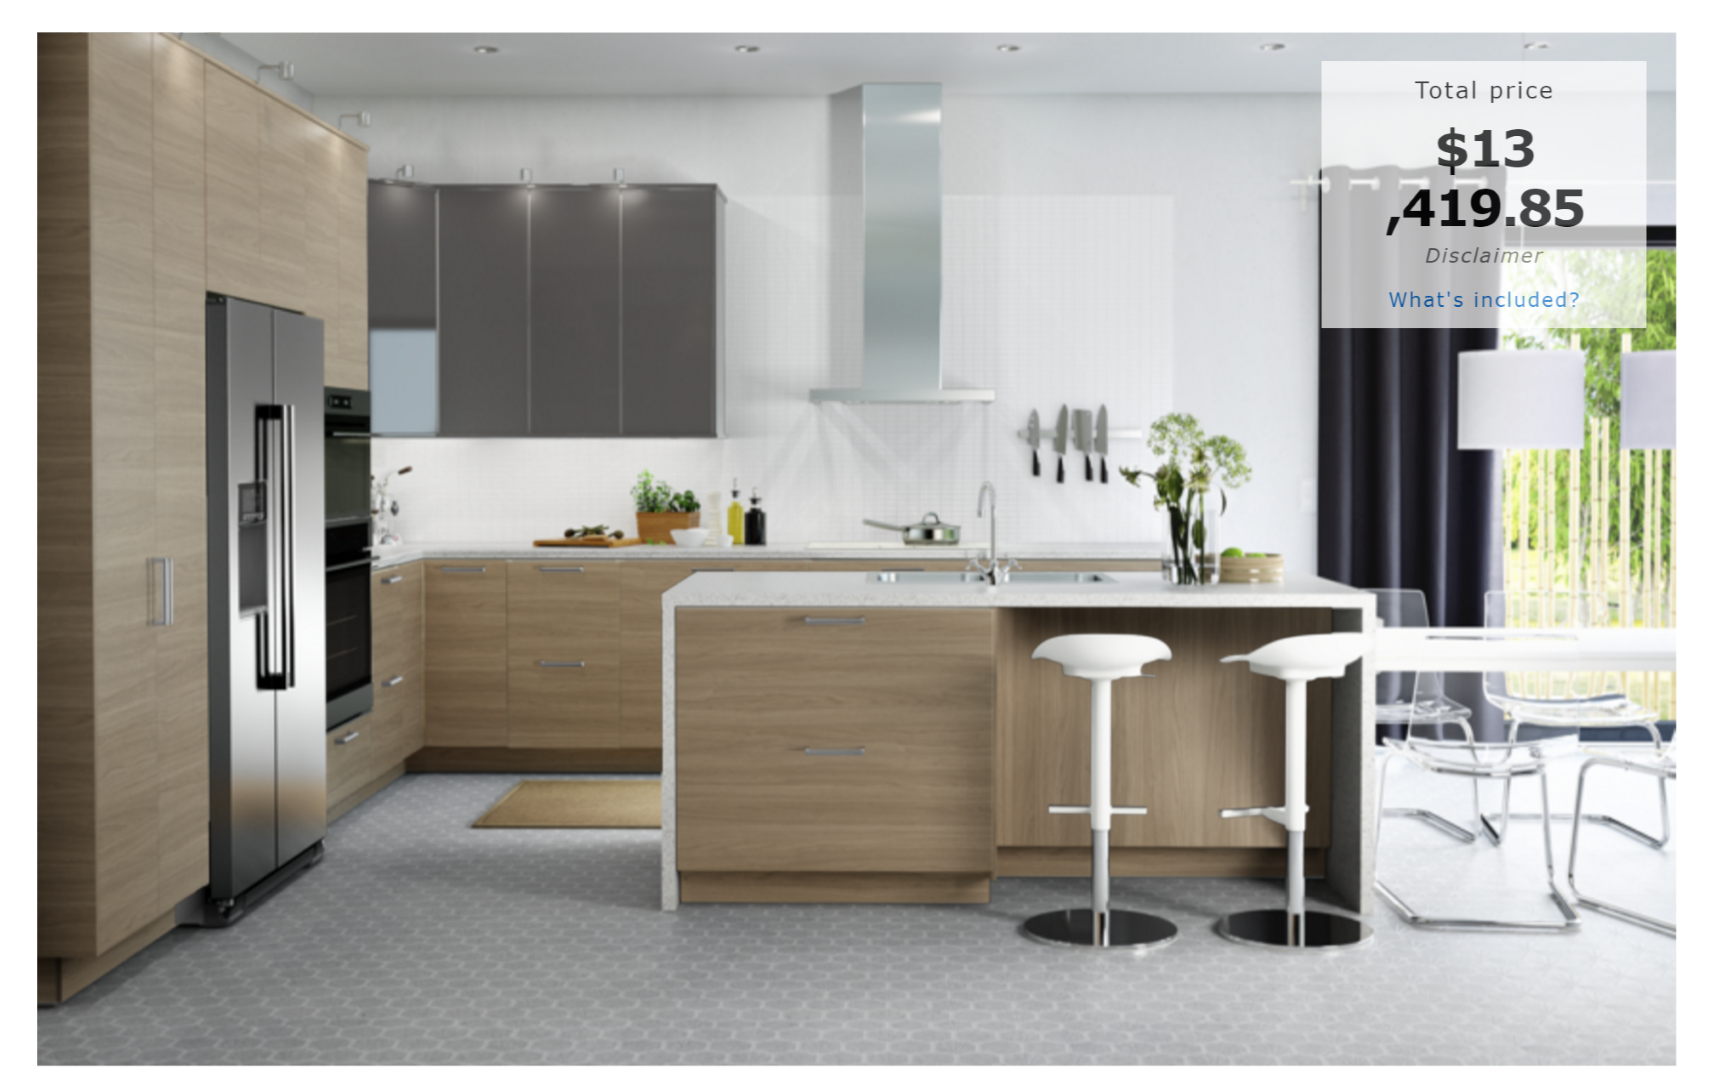 how much will an ikea kitchen cost - How To Calculate Linear Feet For Kitchen Cabinets